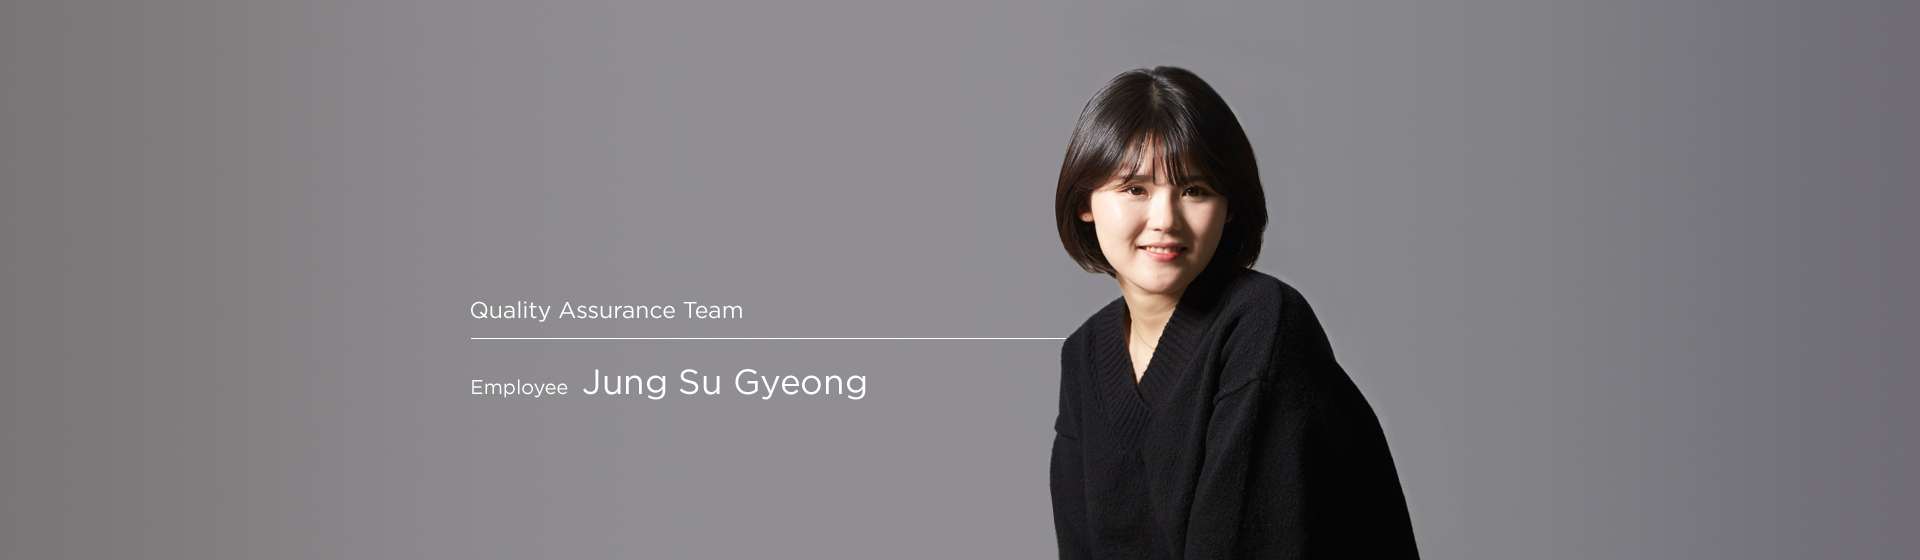 Quality Assurance - Sukyoung jung